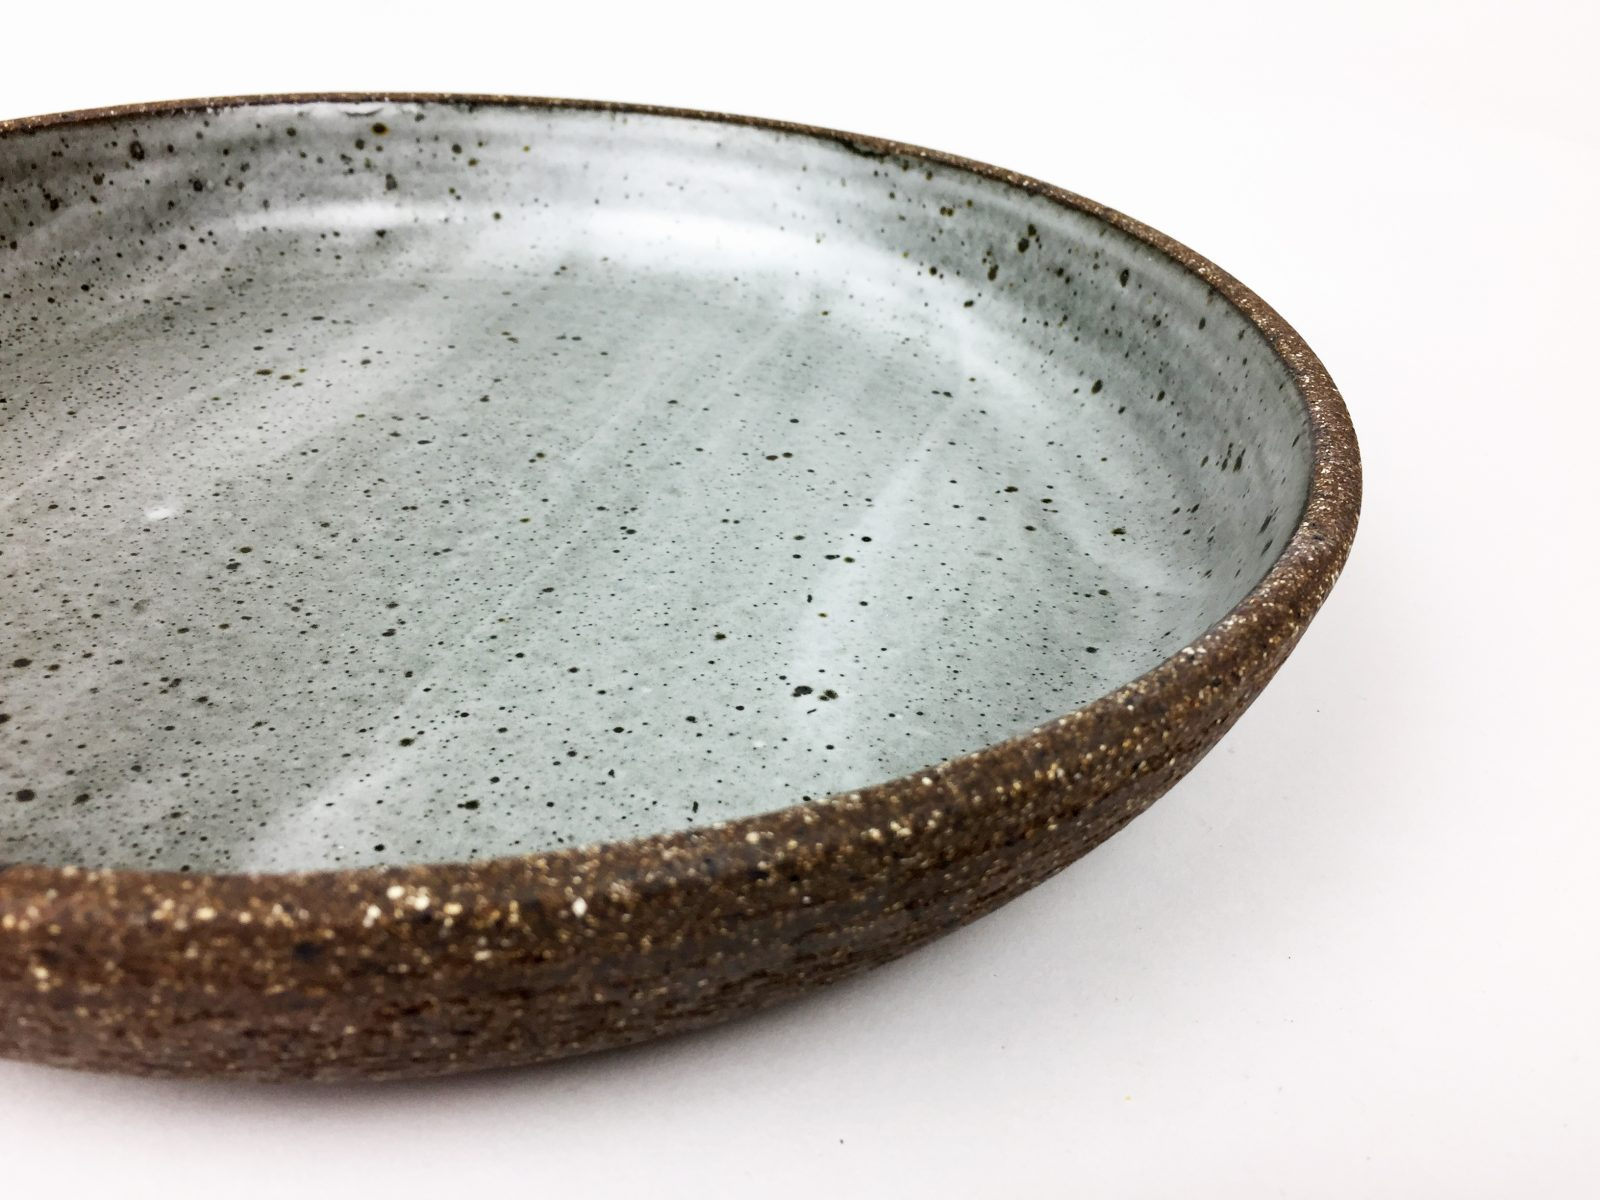 Richilde Flavell, Bowl (detail). Photo: Supplied